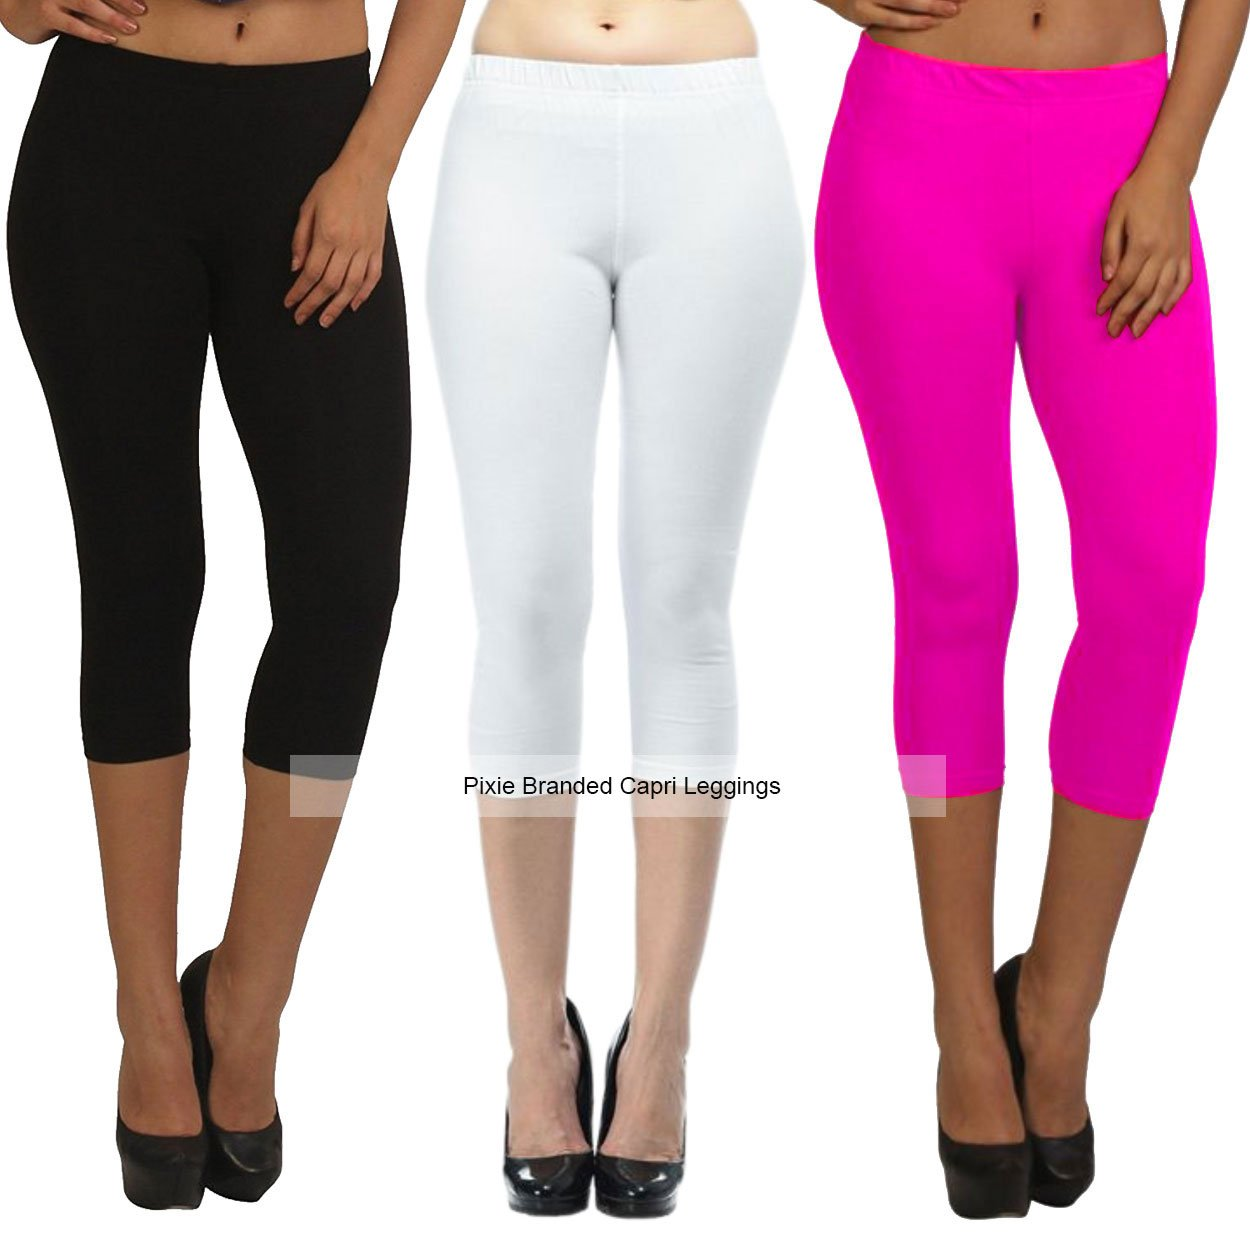 04b8b44132c7a1 Pixie Capri Leggings | 3/4th | Pants | Combo Pack of 3 for  Women/Girls/Ladies (Black, White and Baby Pink) - Free Size: Amazon.in:  Clothing & Accessories